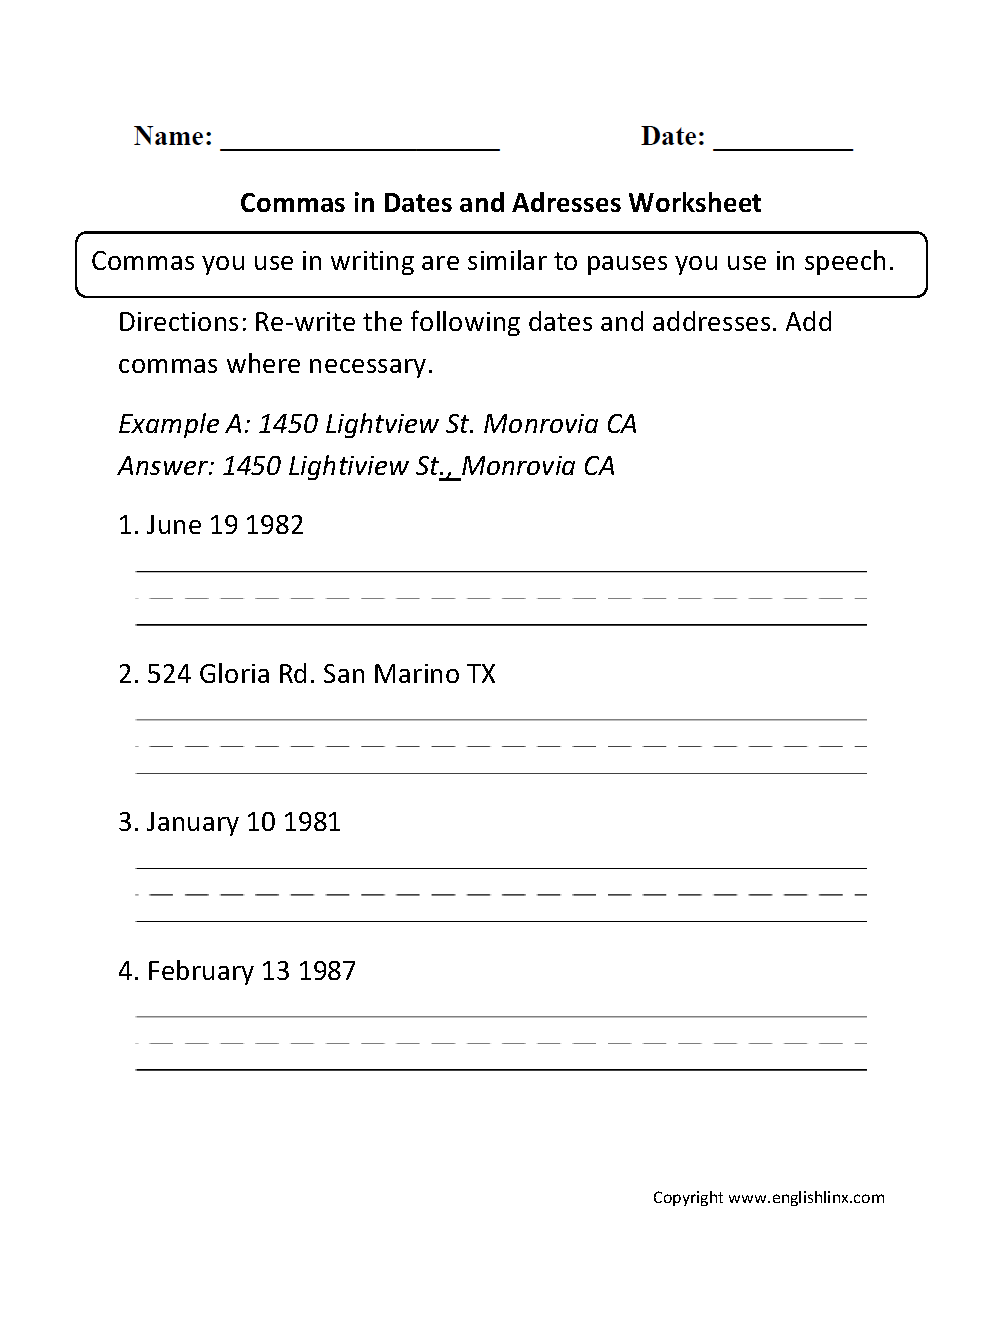 worksheet Comma Practice Worksheet englishlinx com commas worksheets in dates and addresses worksheet